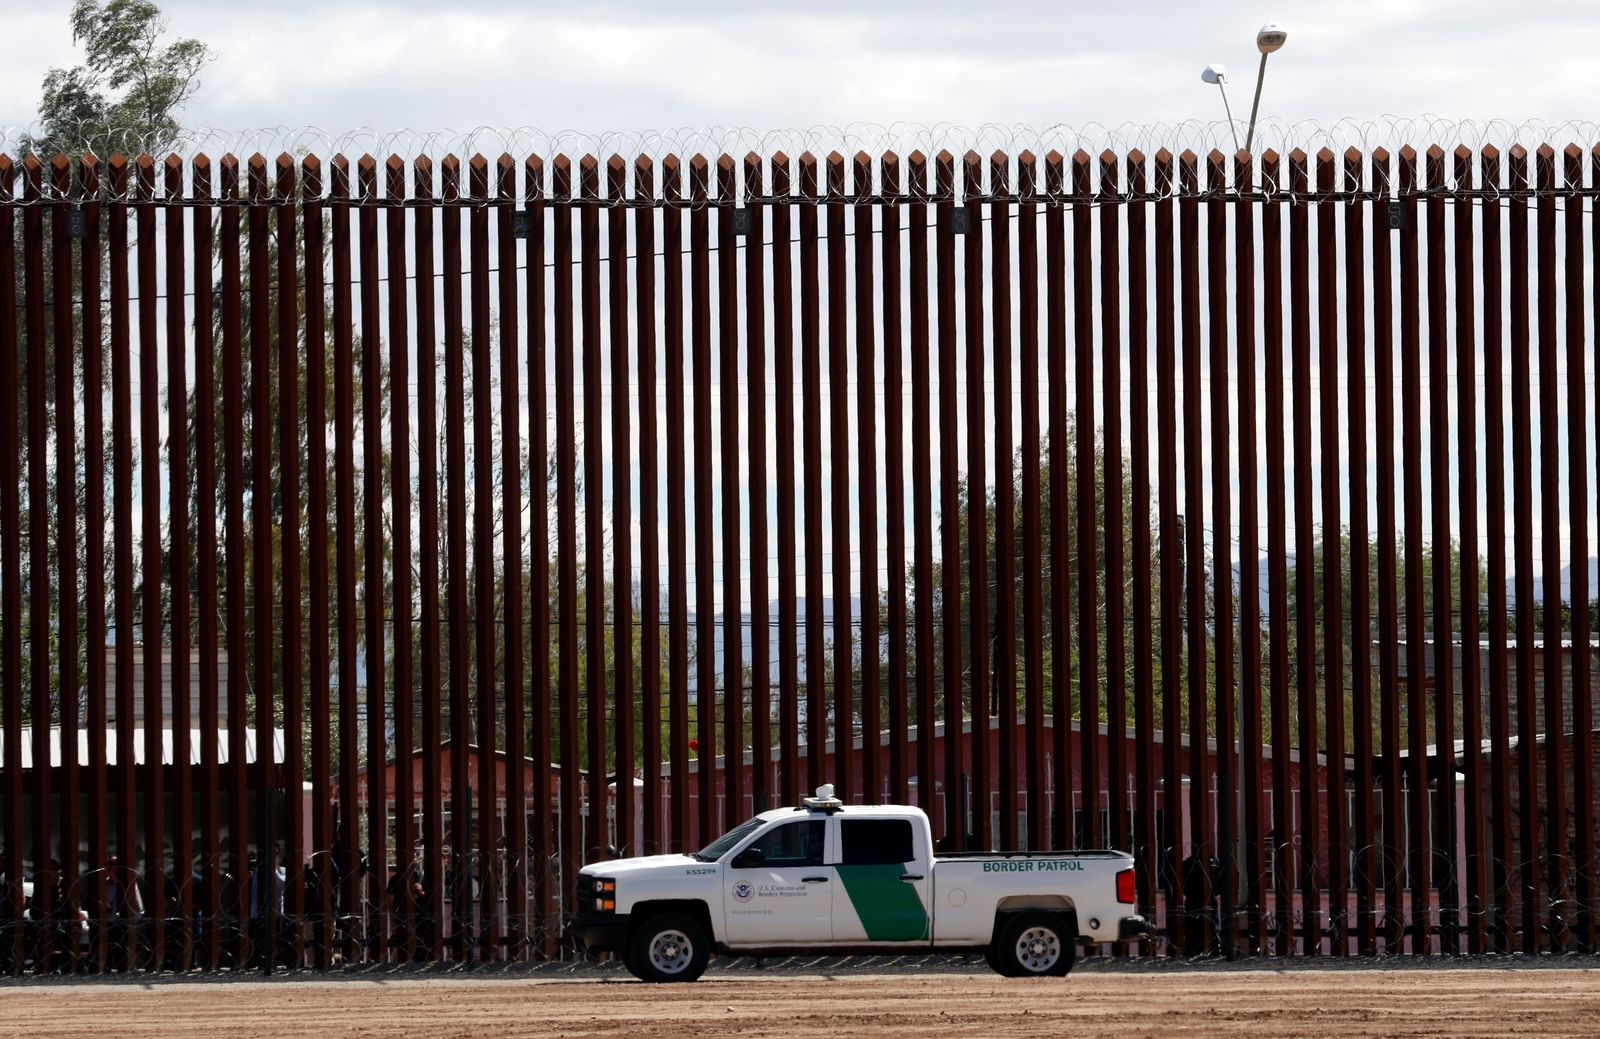 FILE - In this April 5, 2019, file photo, a U.S. Customs and Border Protection vehicle sits near the wall as President Donald Trump visits a new section of the border wall with Mexico in El Centro, Calif.{ } (AP Photo/Jacquelyn Martin, File)